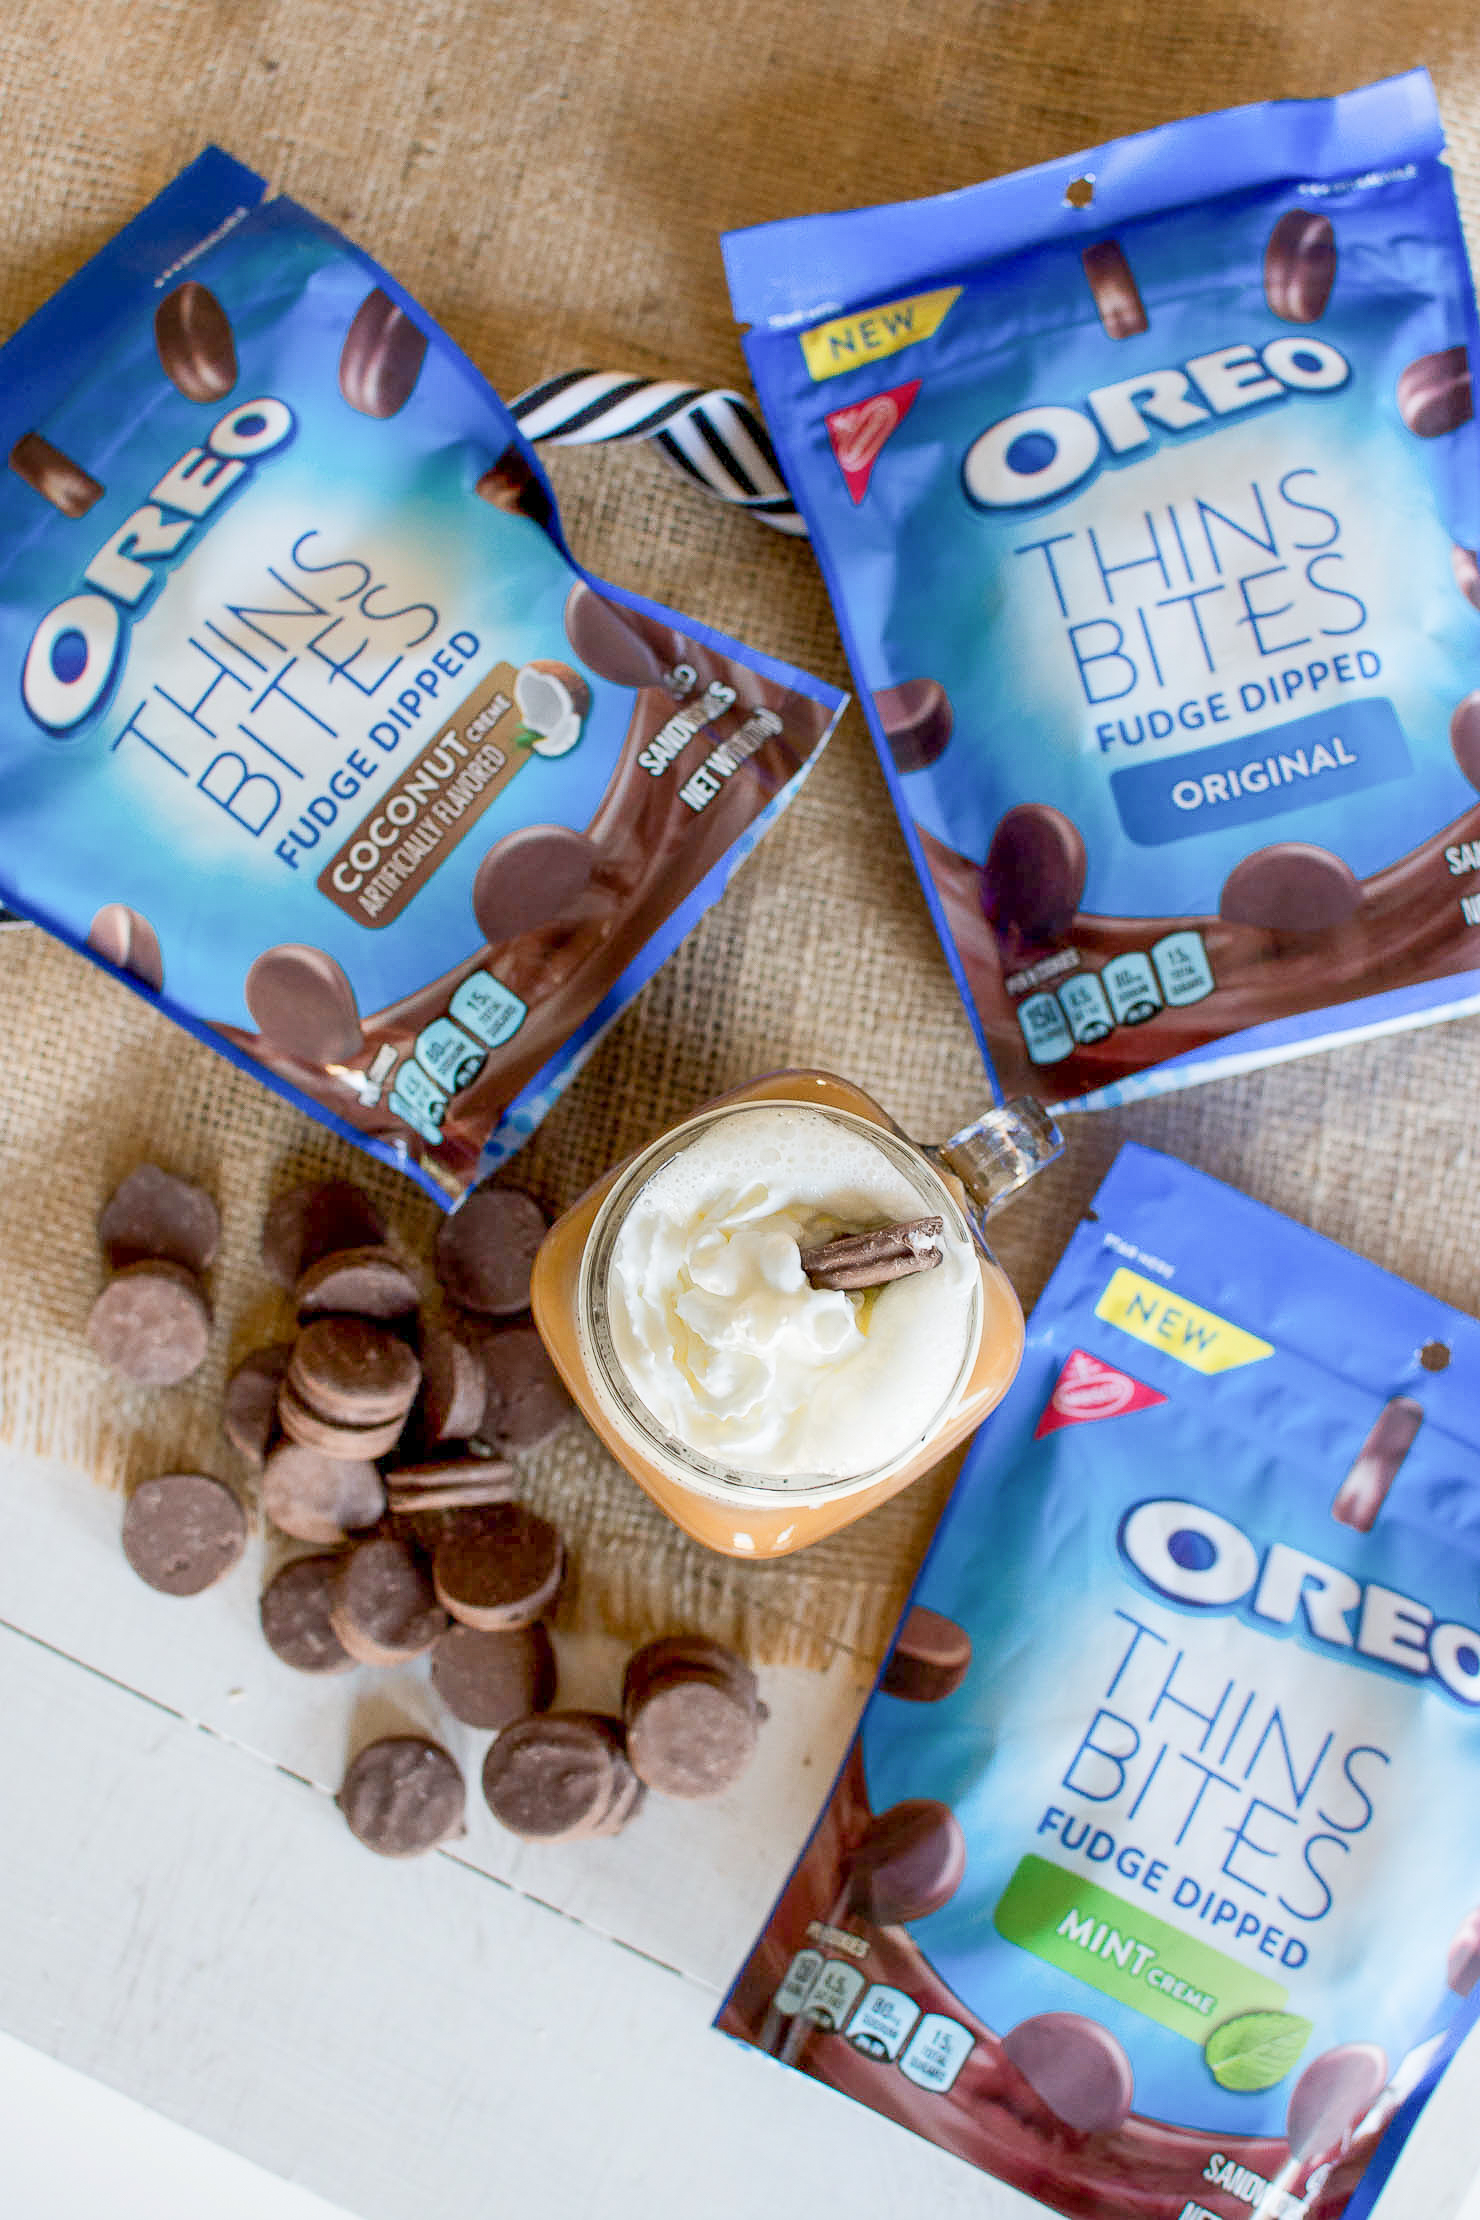 In partnership with Oreo Thins Bites |  How I Relax with Oreo Thins Bites